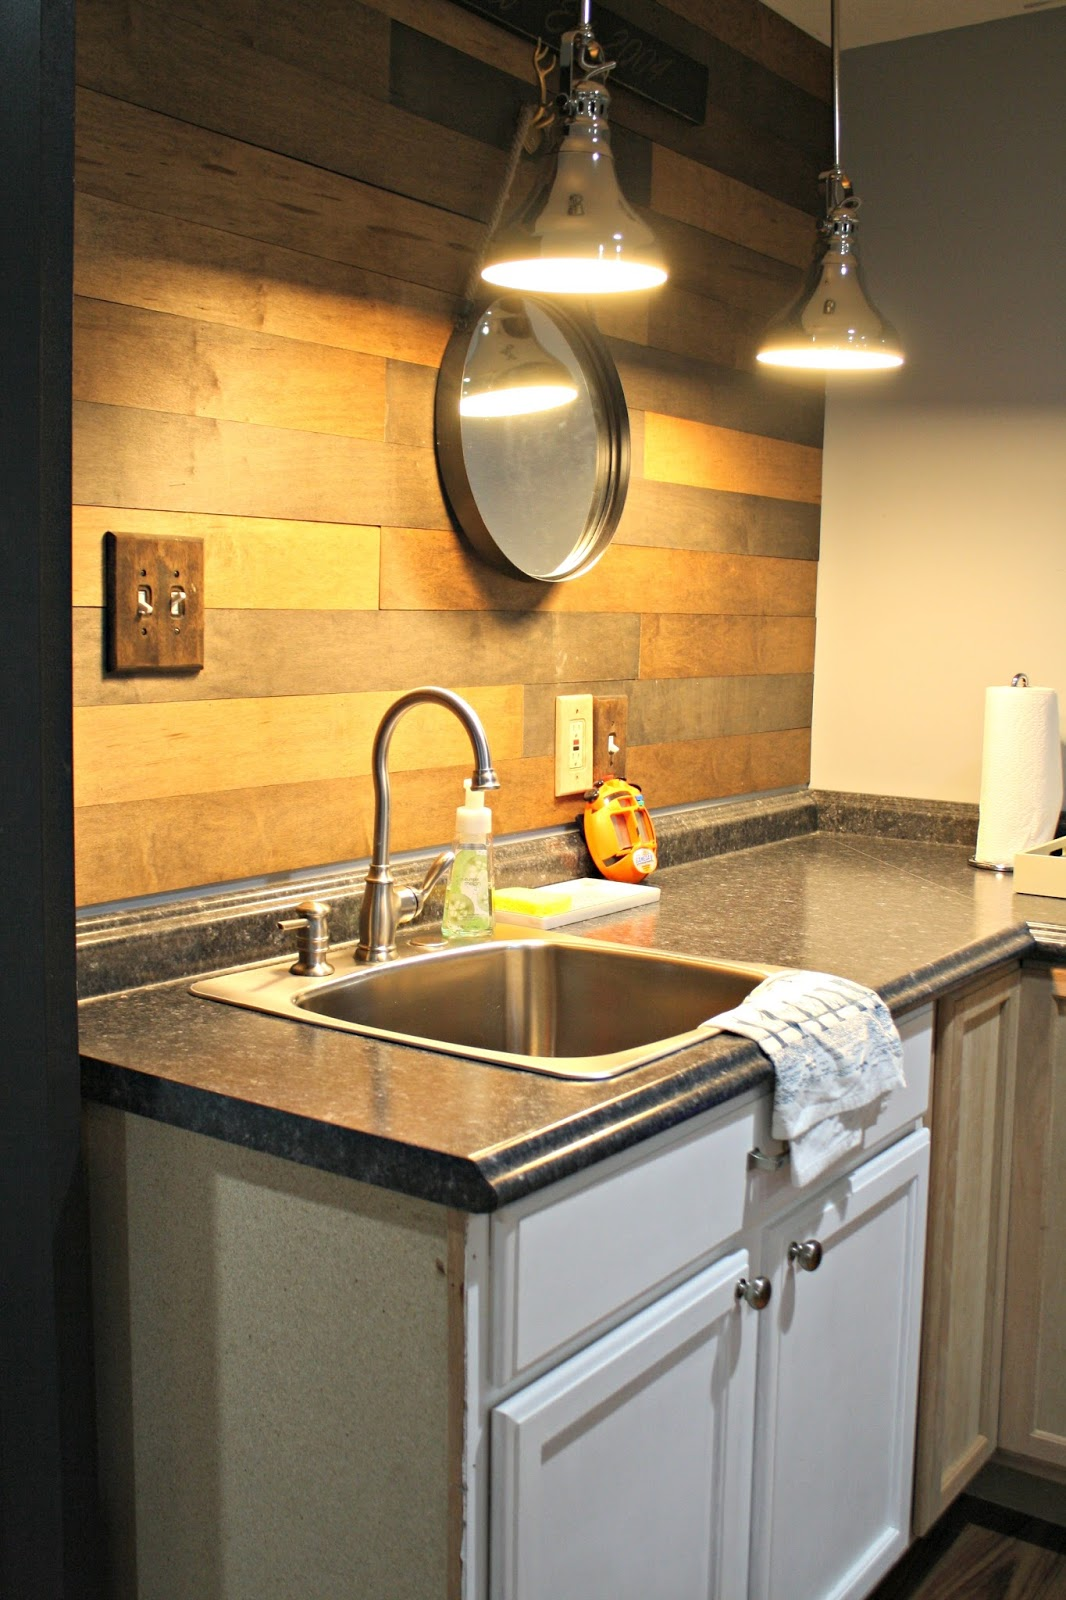 Basement Sinks : basement sink in kitchenette